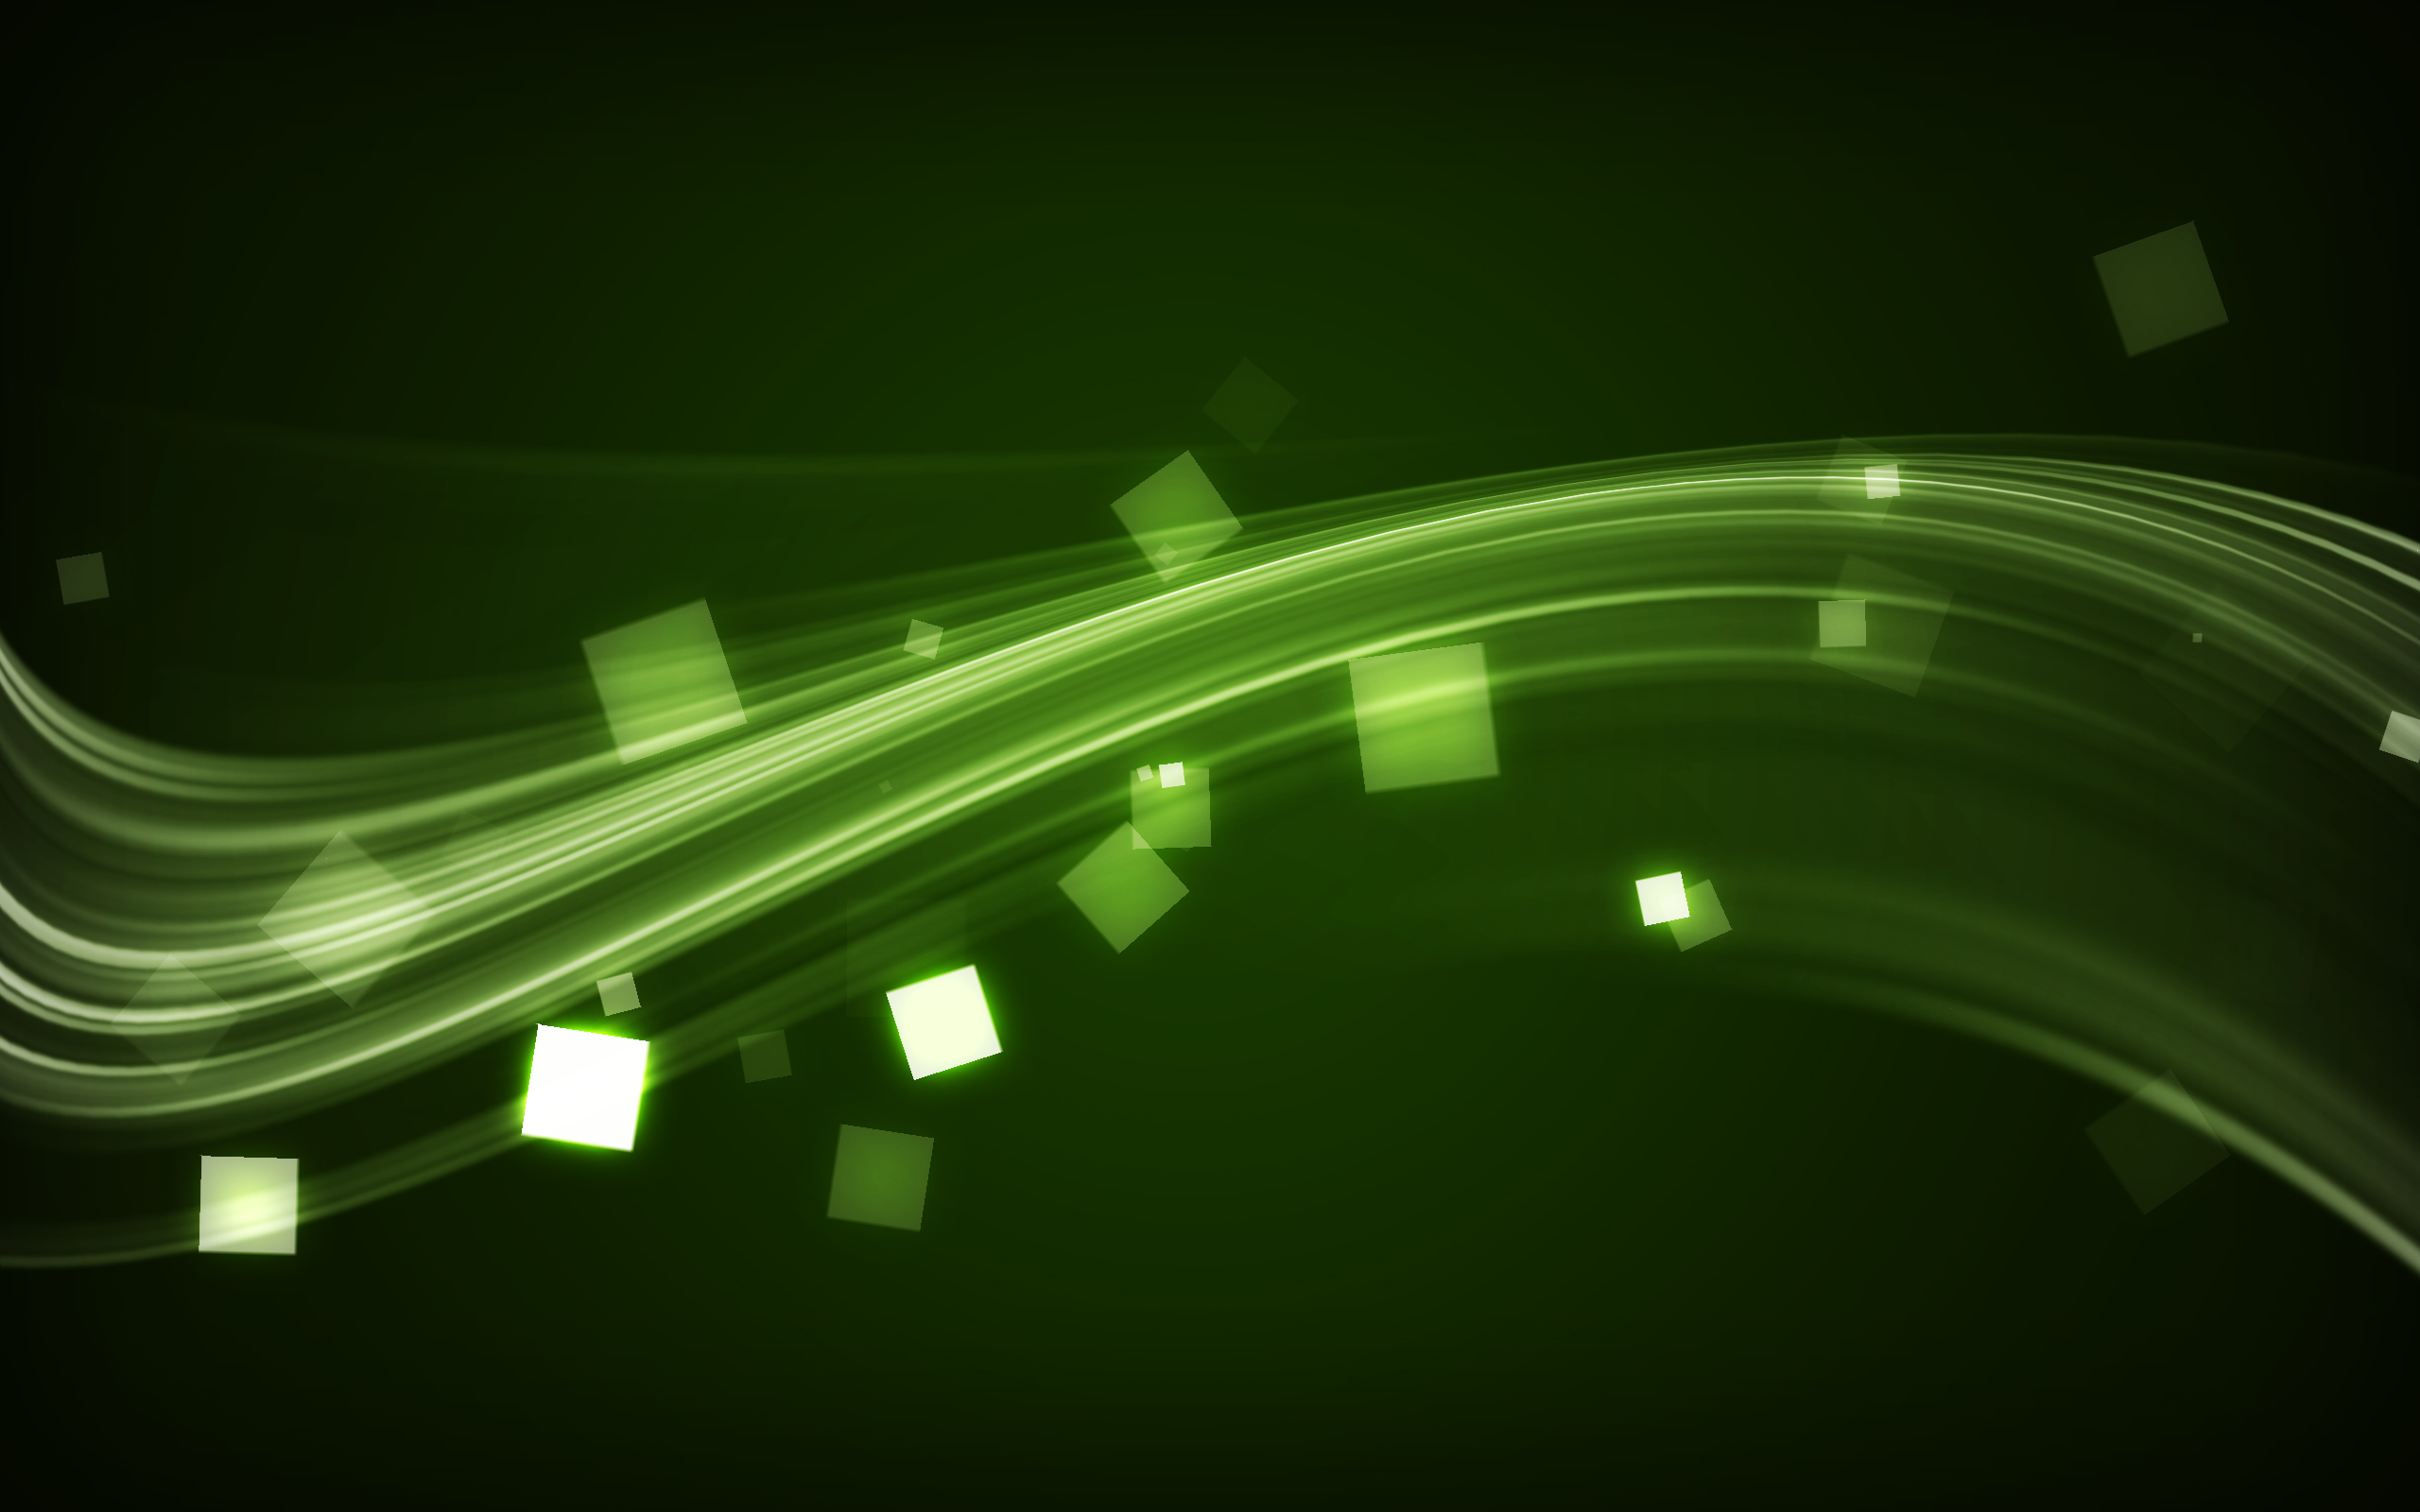 Green Abstract 1080p High Definition Desktop W #7907 Hd ...